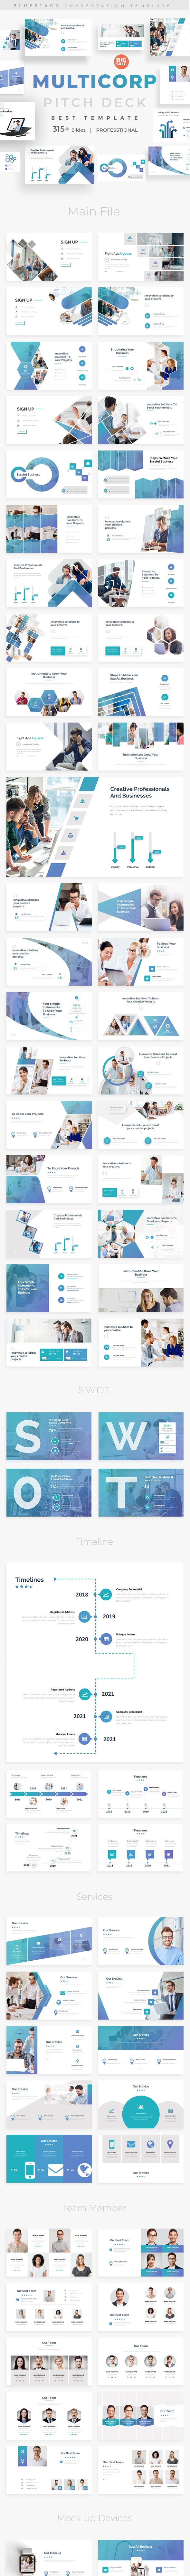 MultiCorp Pitch Deck Powerpoint Template - Business PowerPoint Templates